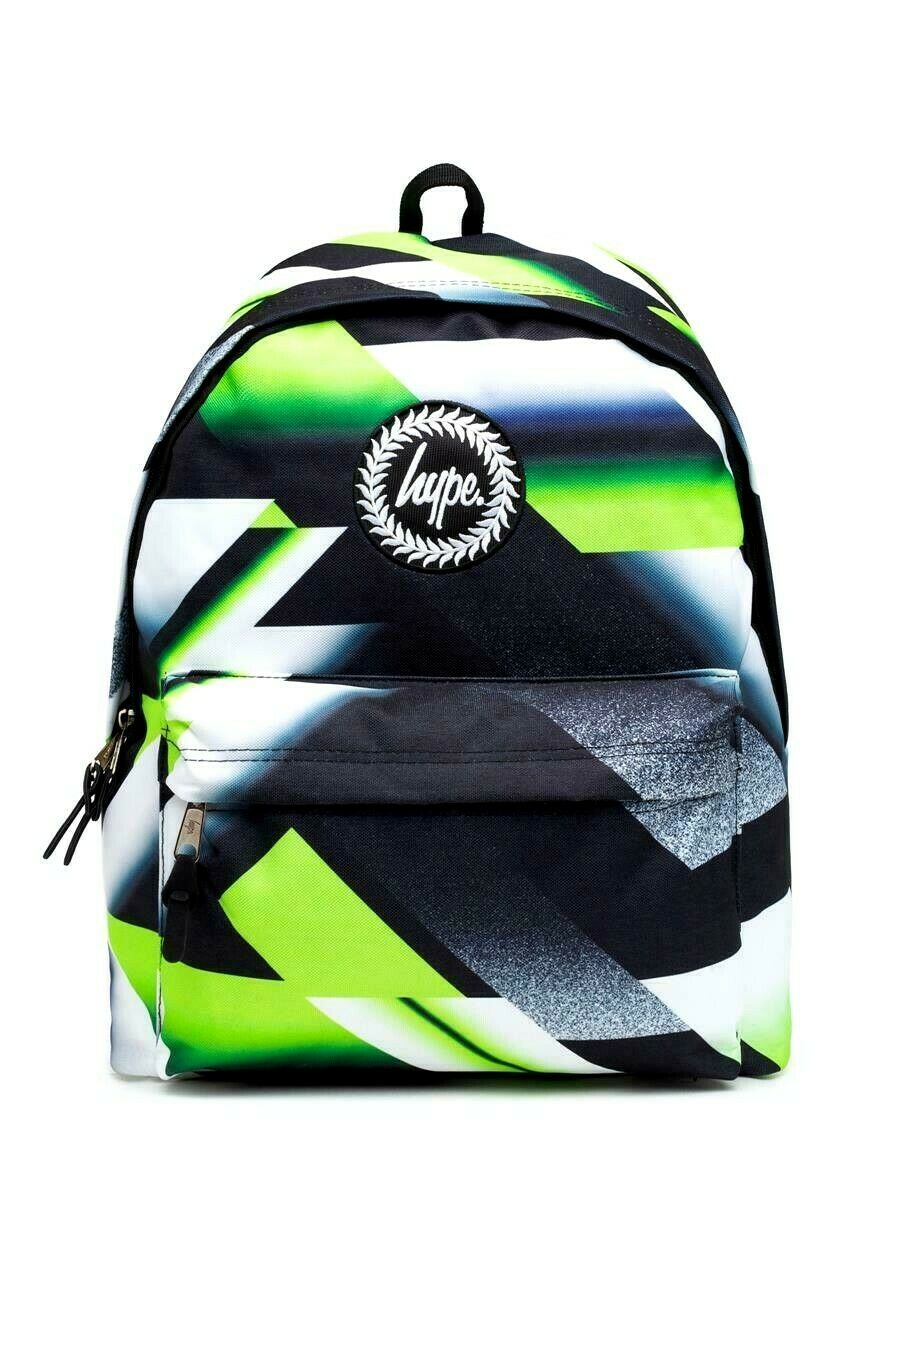 Lime 807 Backpack - Black/Lime